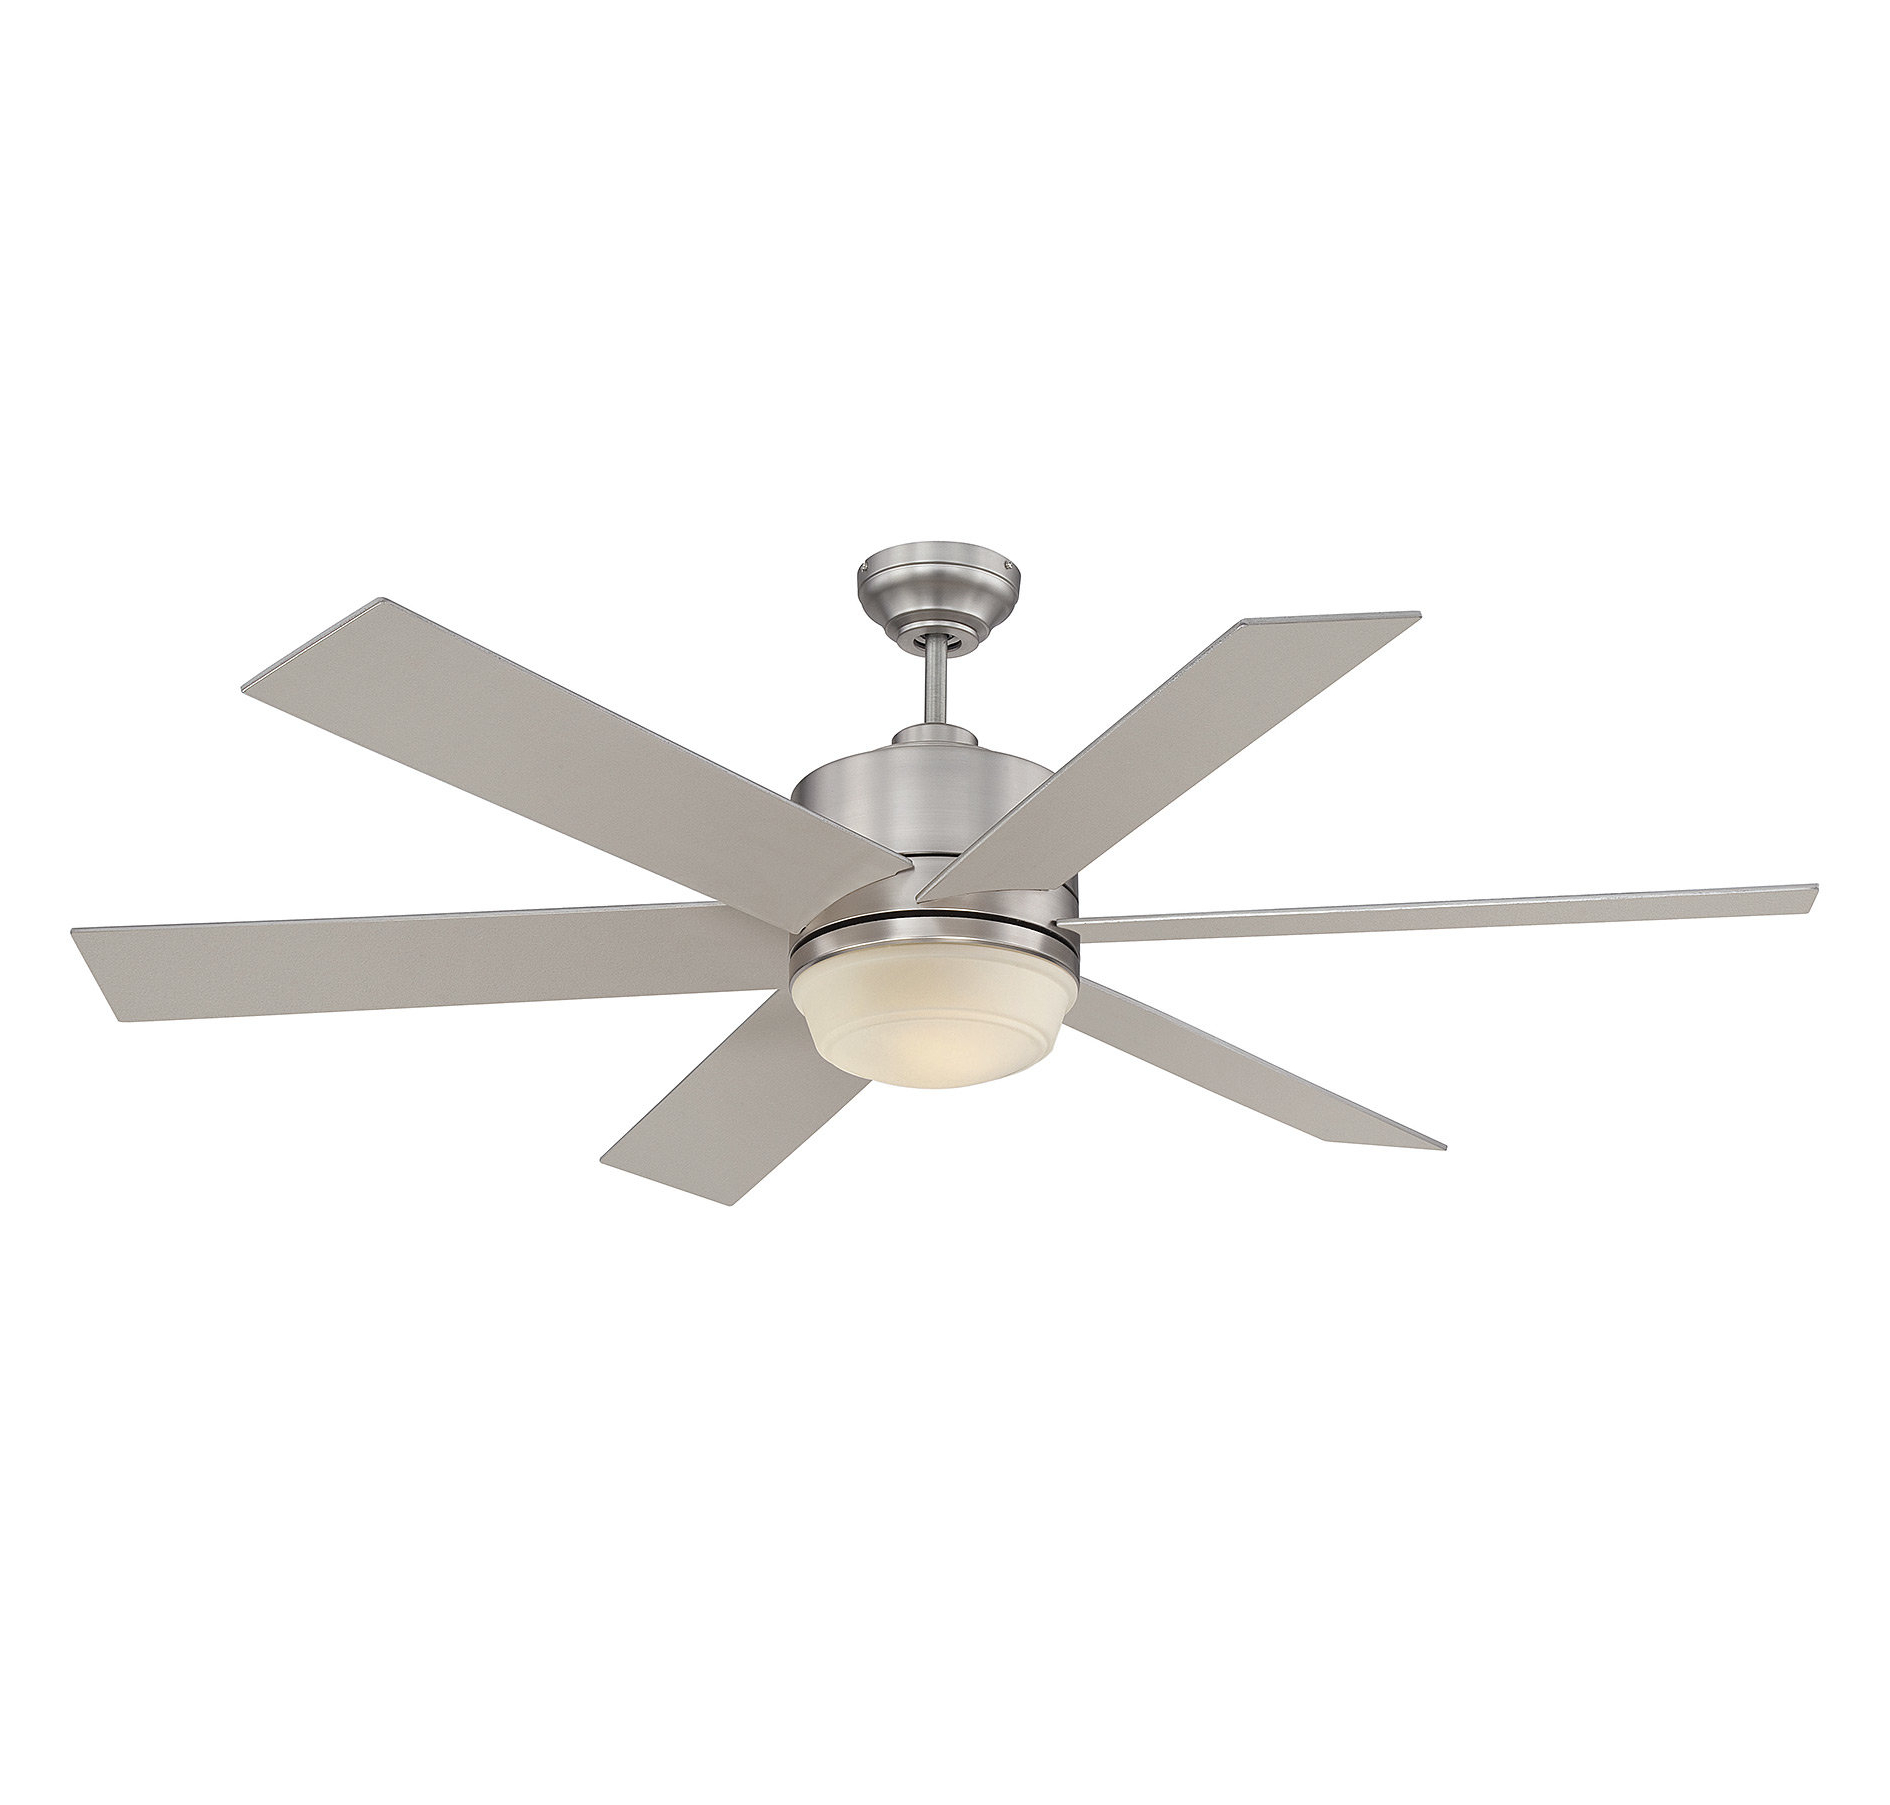 "Cillian 6 Blade Ceiling Fans With Regard To 2020 60"" Ayleen 6 Blade Ceiling Fan With Remote, Light Kit Included (View 10 of 20)"